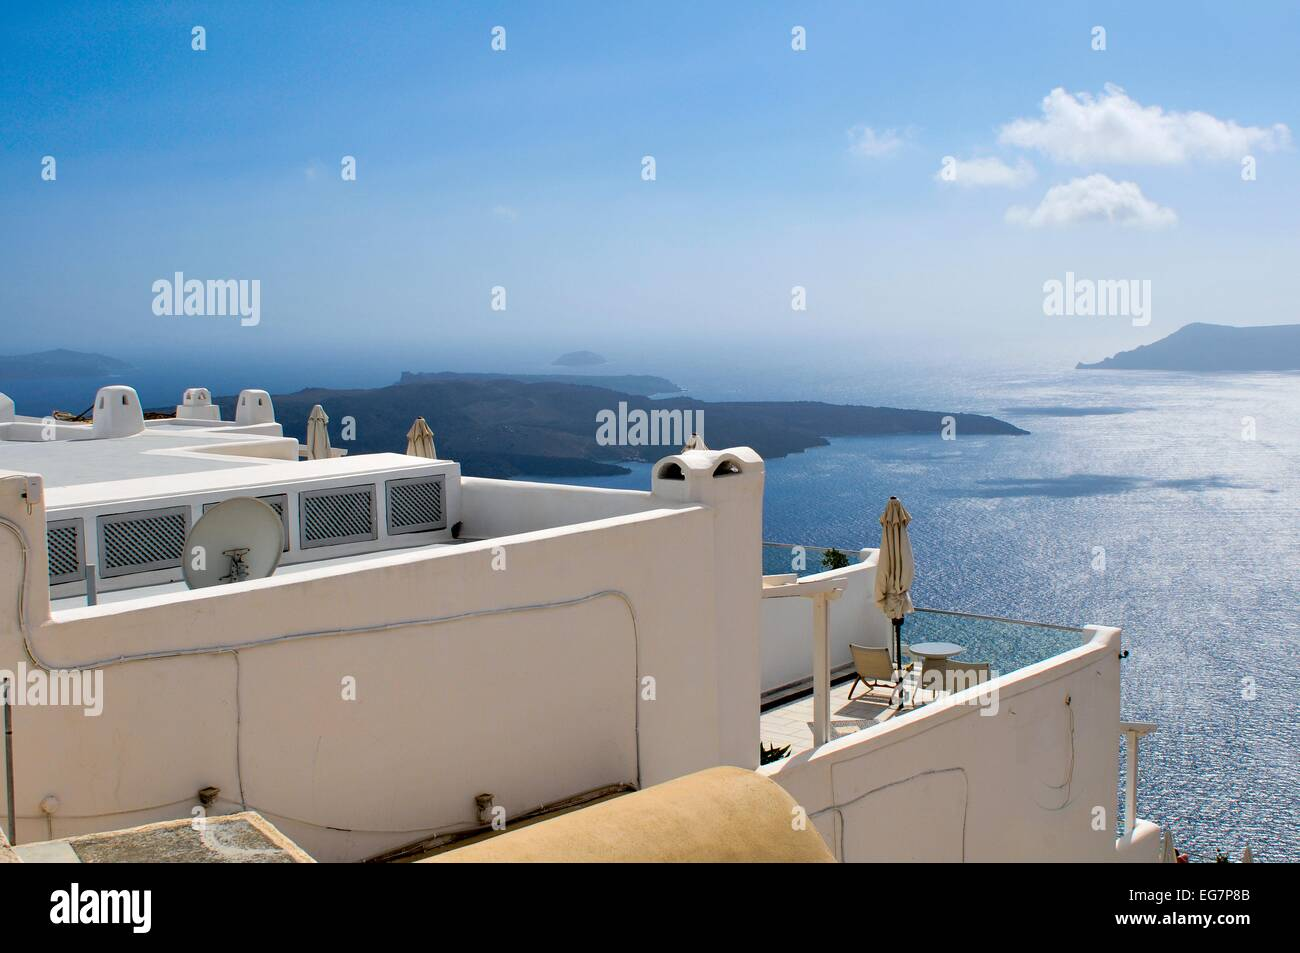 Looking from the the town of Fira, the capital of the island of Santorini (classically Thera, officially Thira) - Stock Image